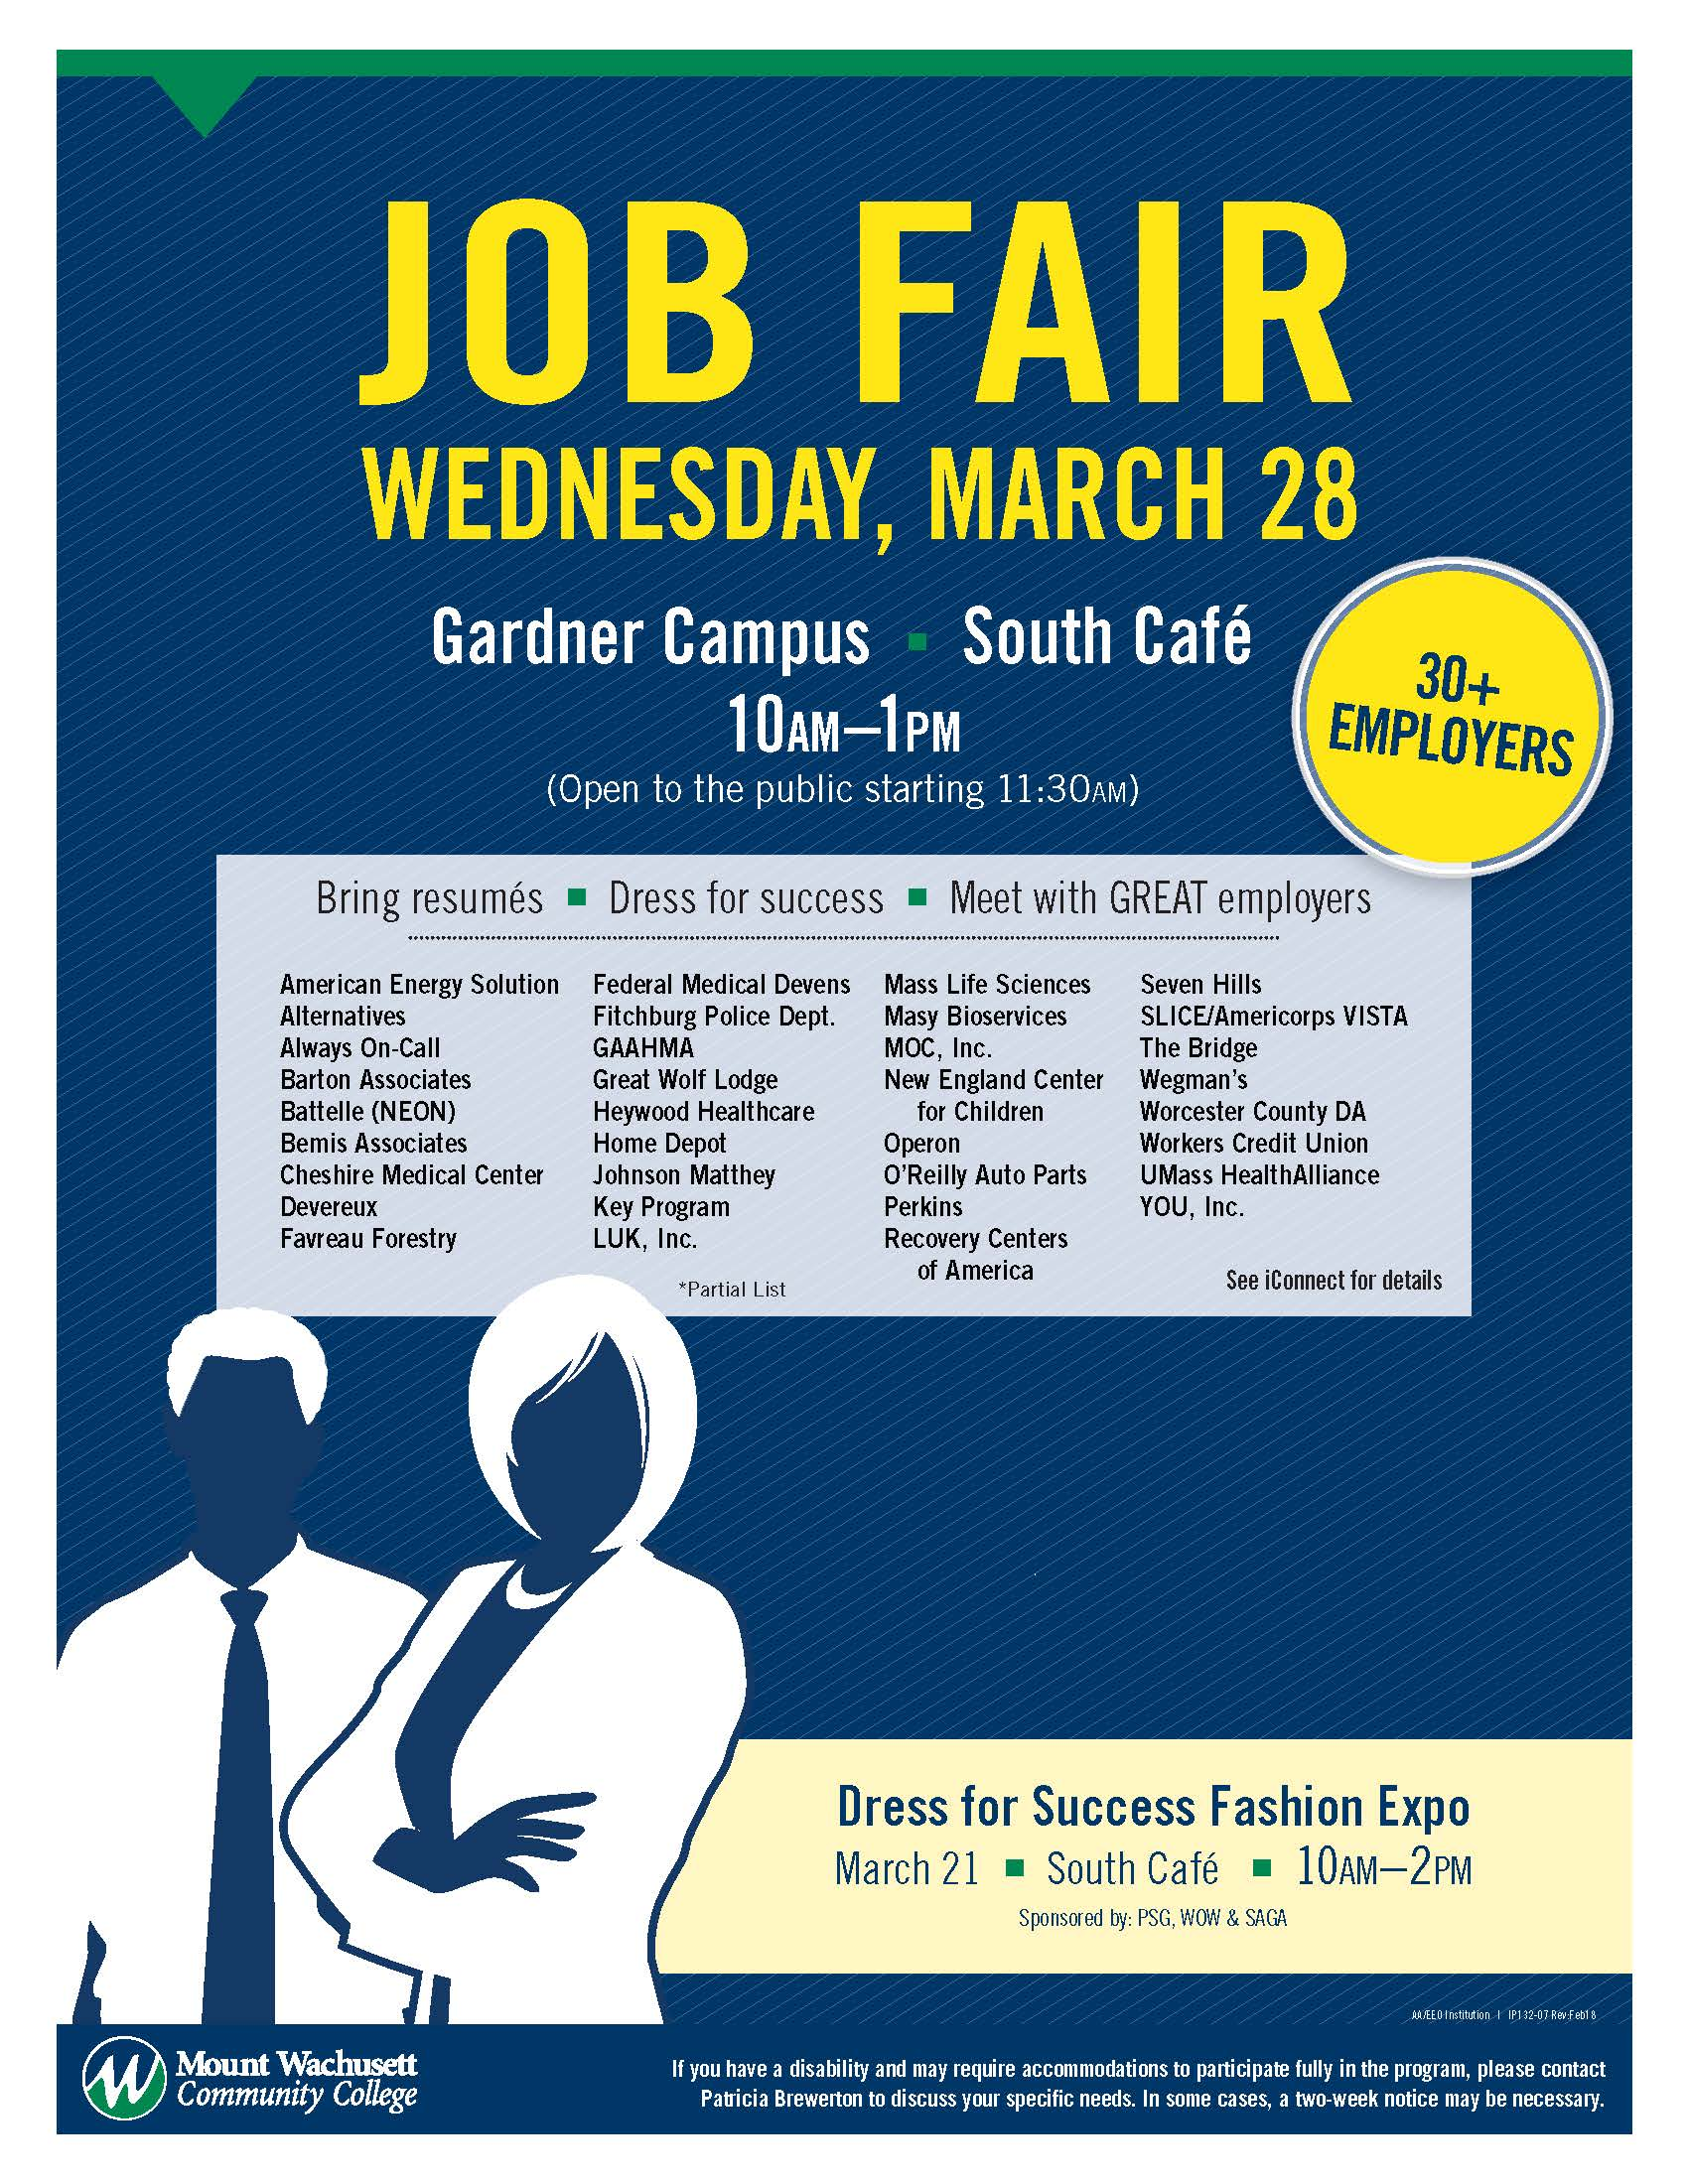 A flyer for the job fair lists the businesses that will be present.